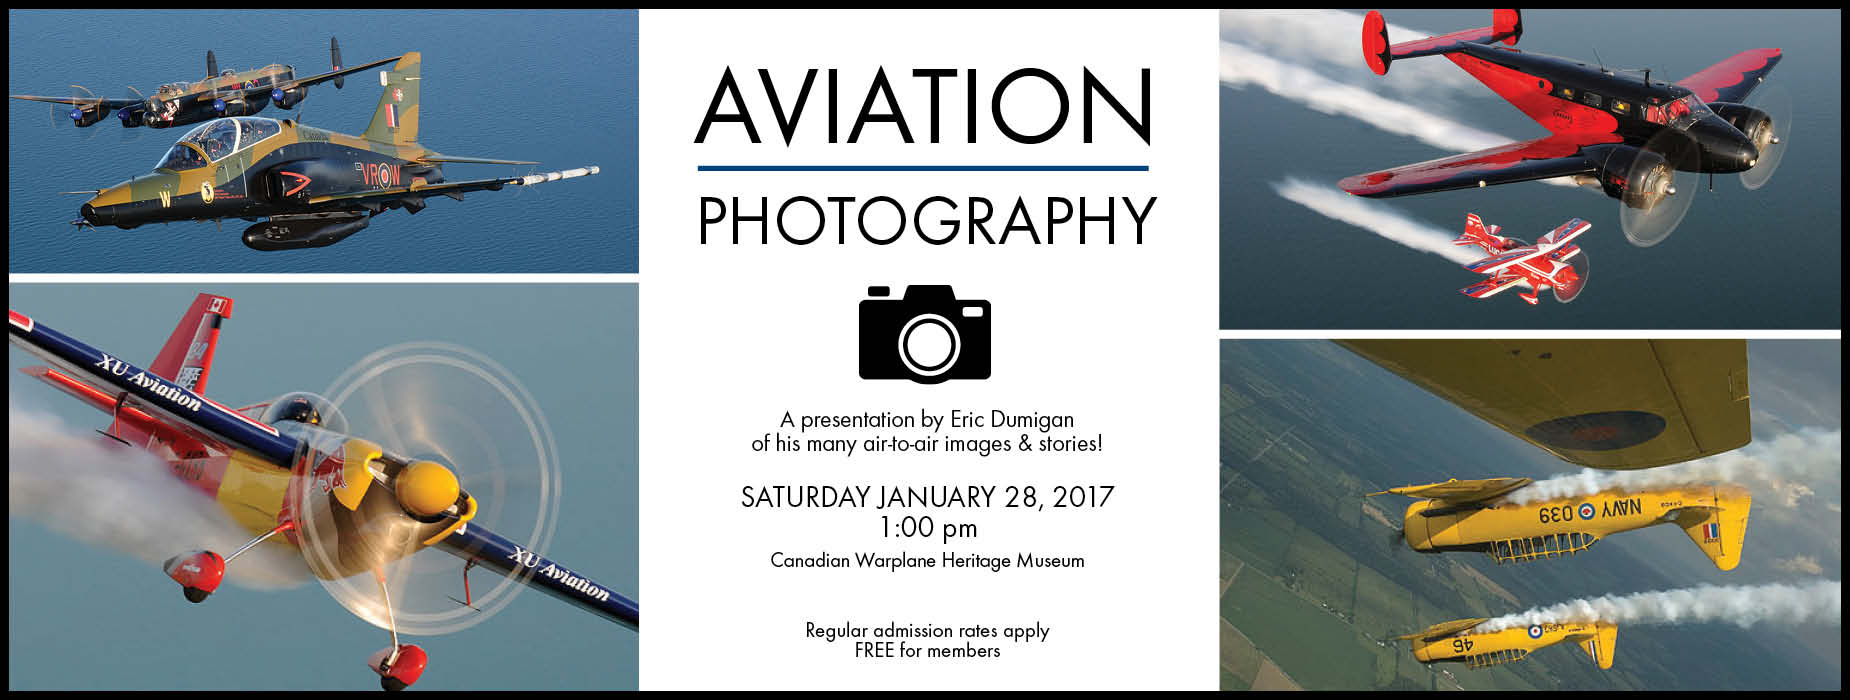 Poster for - Aviation Photography